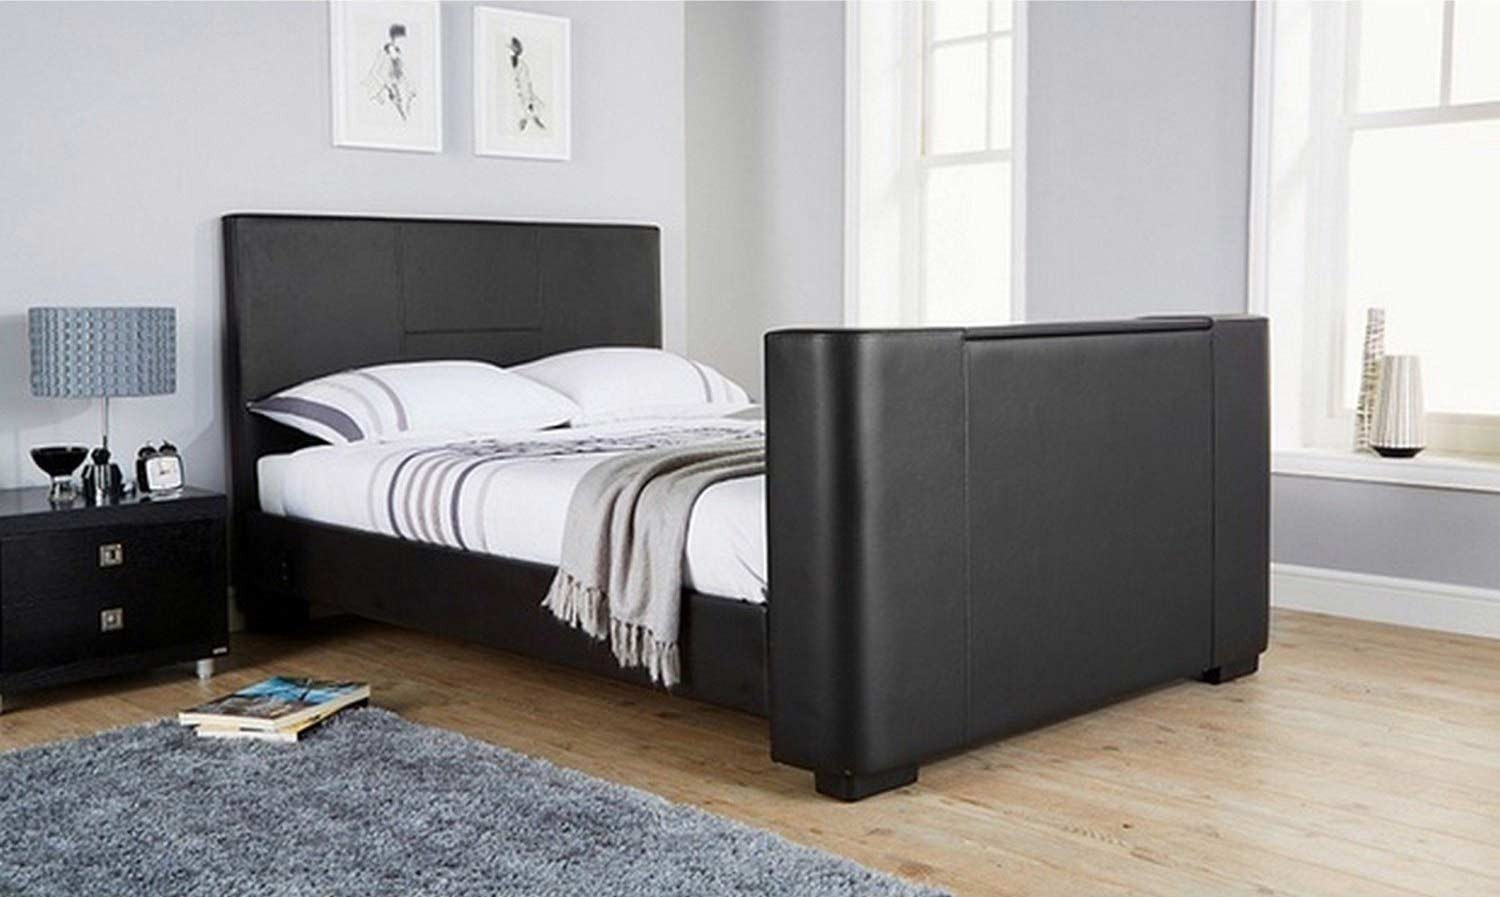 Newark TV Bed Assembly Instructions (GFW)